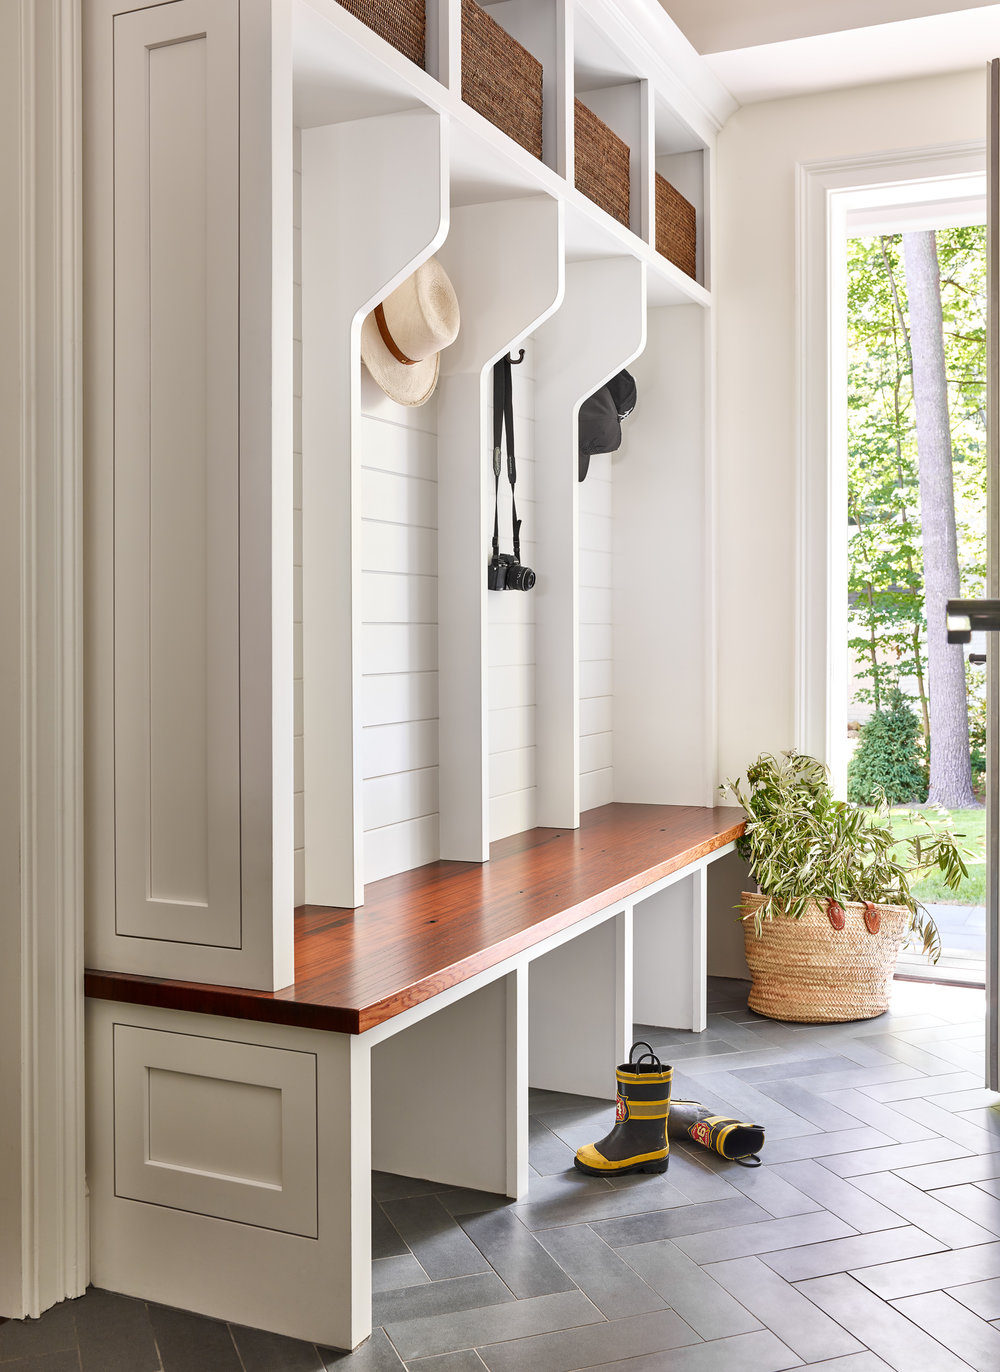 PinneyDesigns_UpweyWellesley_MudRoom_Final_SMALL copy.jpg